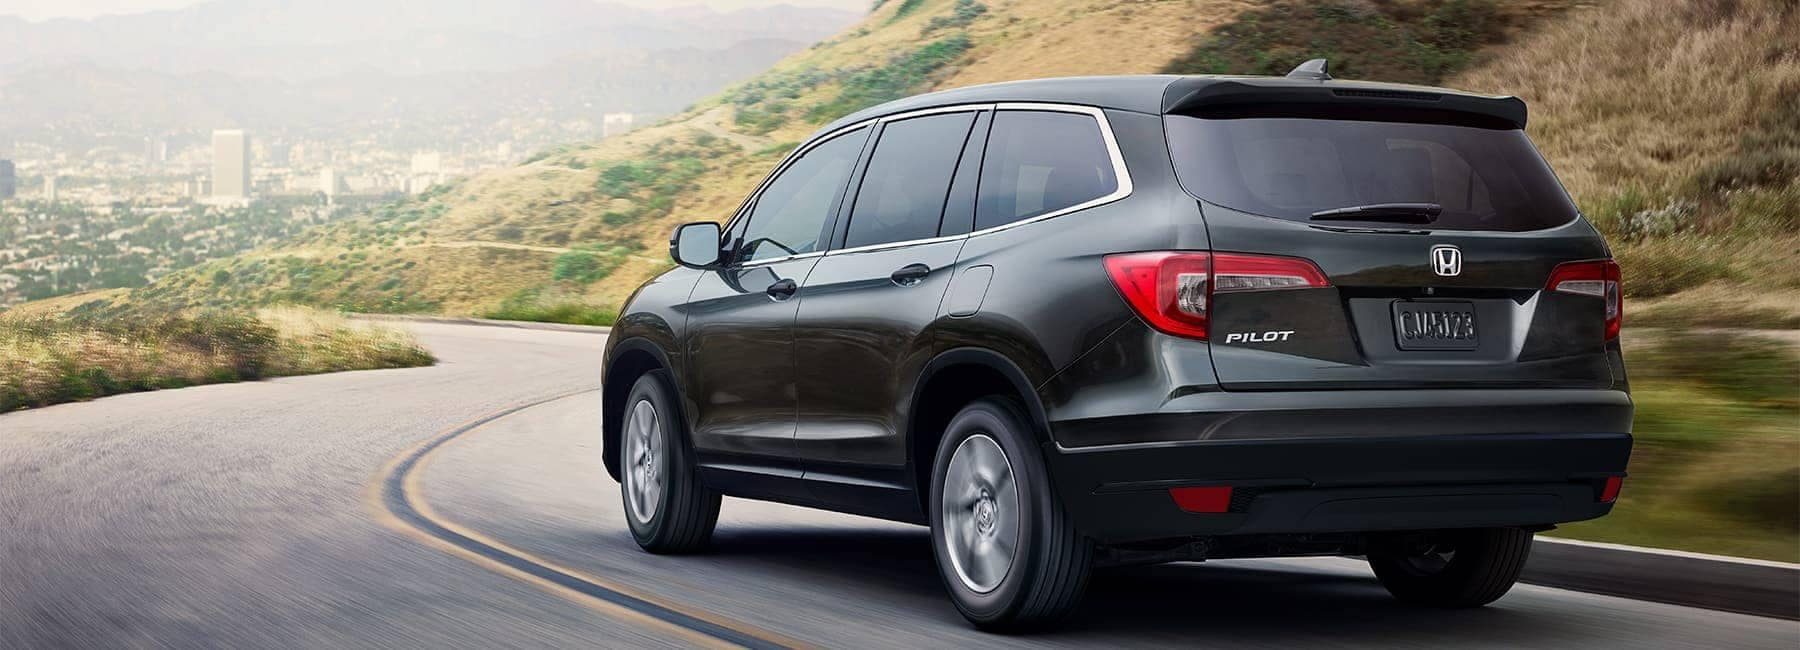 2021 Black Honda Pilot LX driving on a curved road